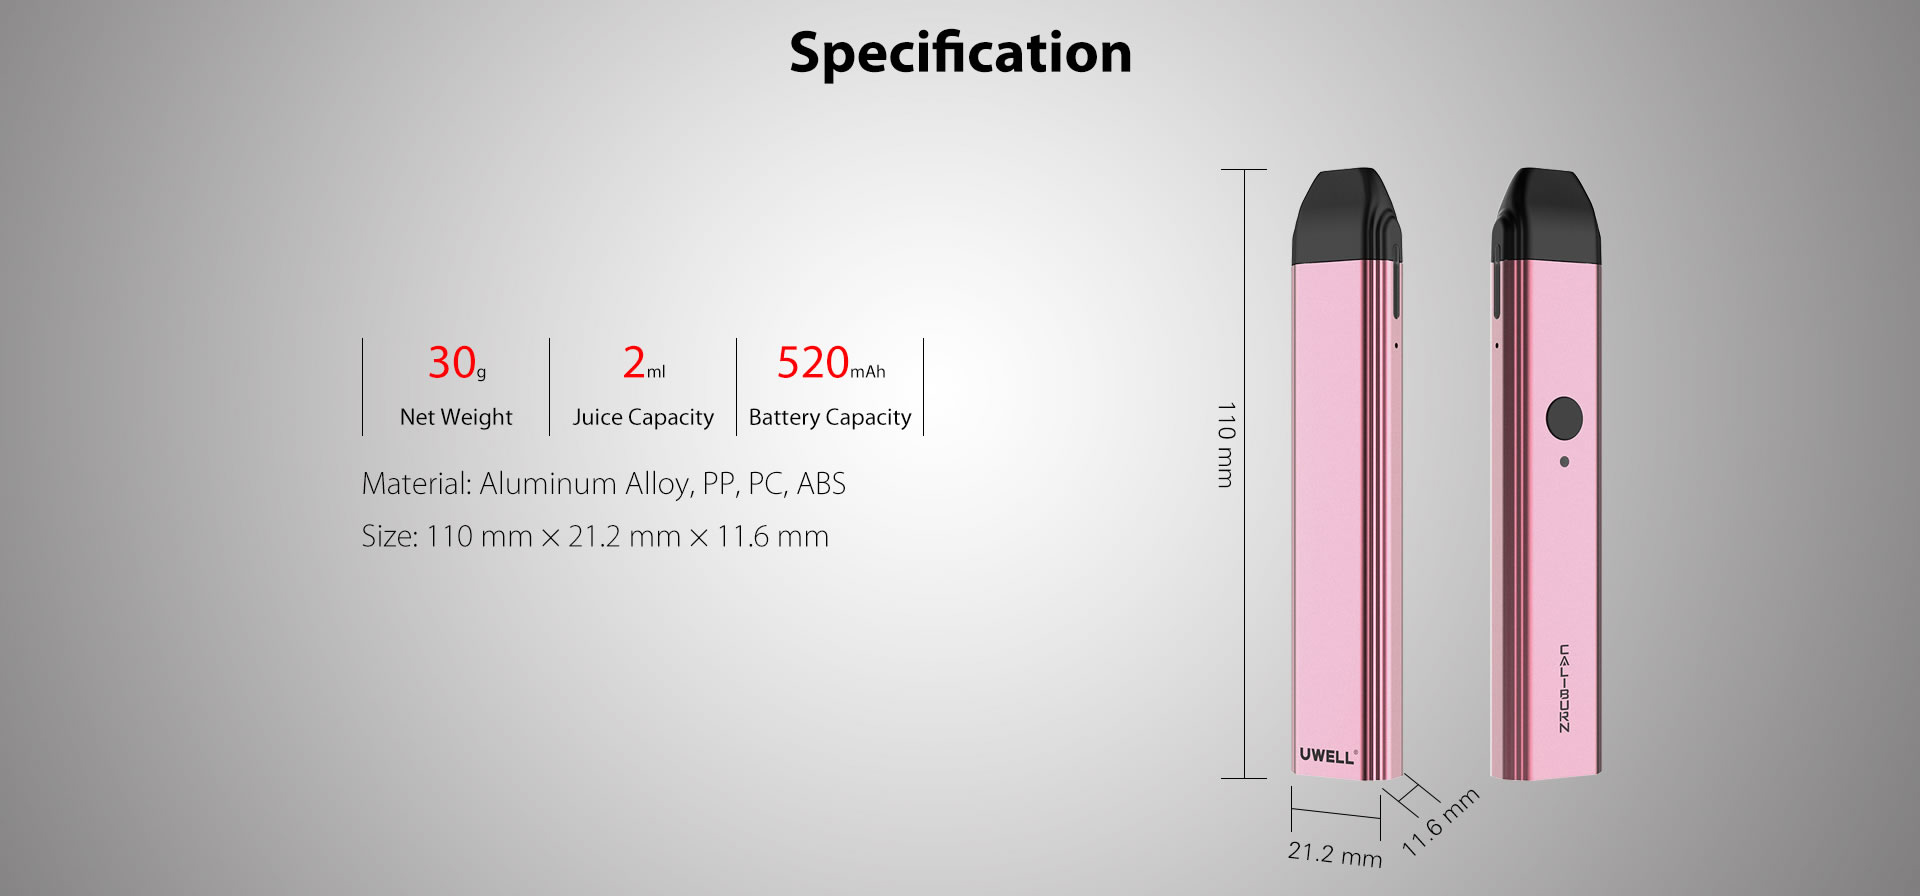 Uwell Caliburn Kit Specifications